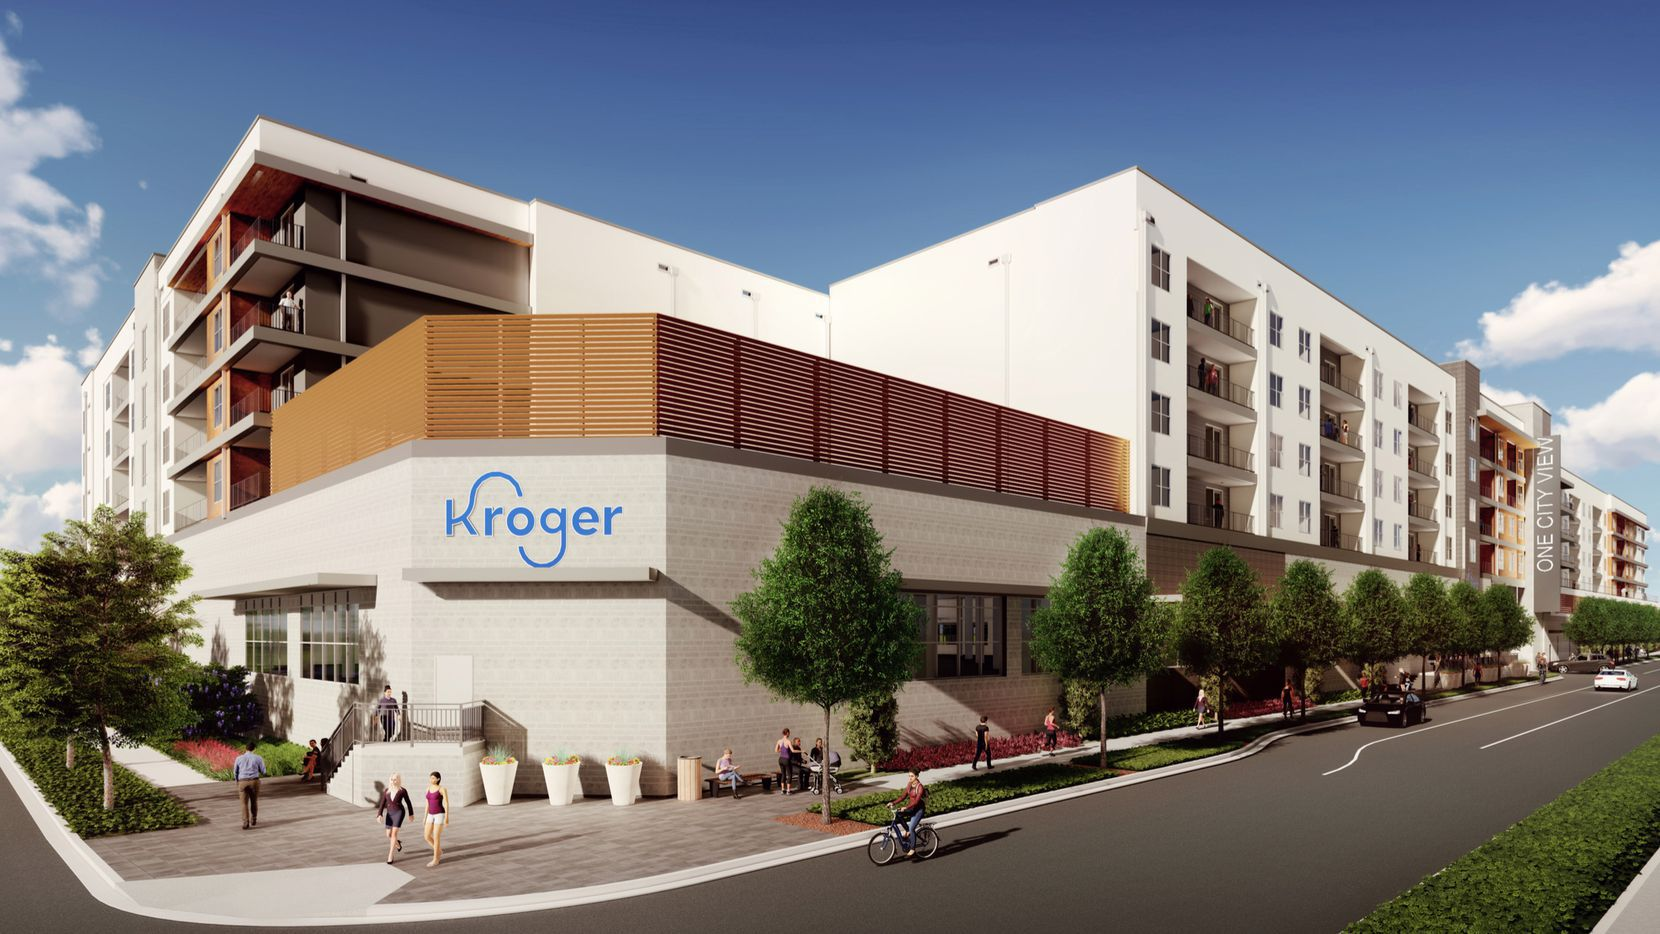 An 80,000-square-foot Kroger store would be located under four levels of apartments.